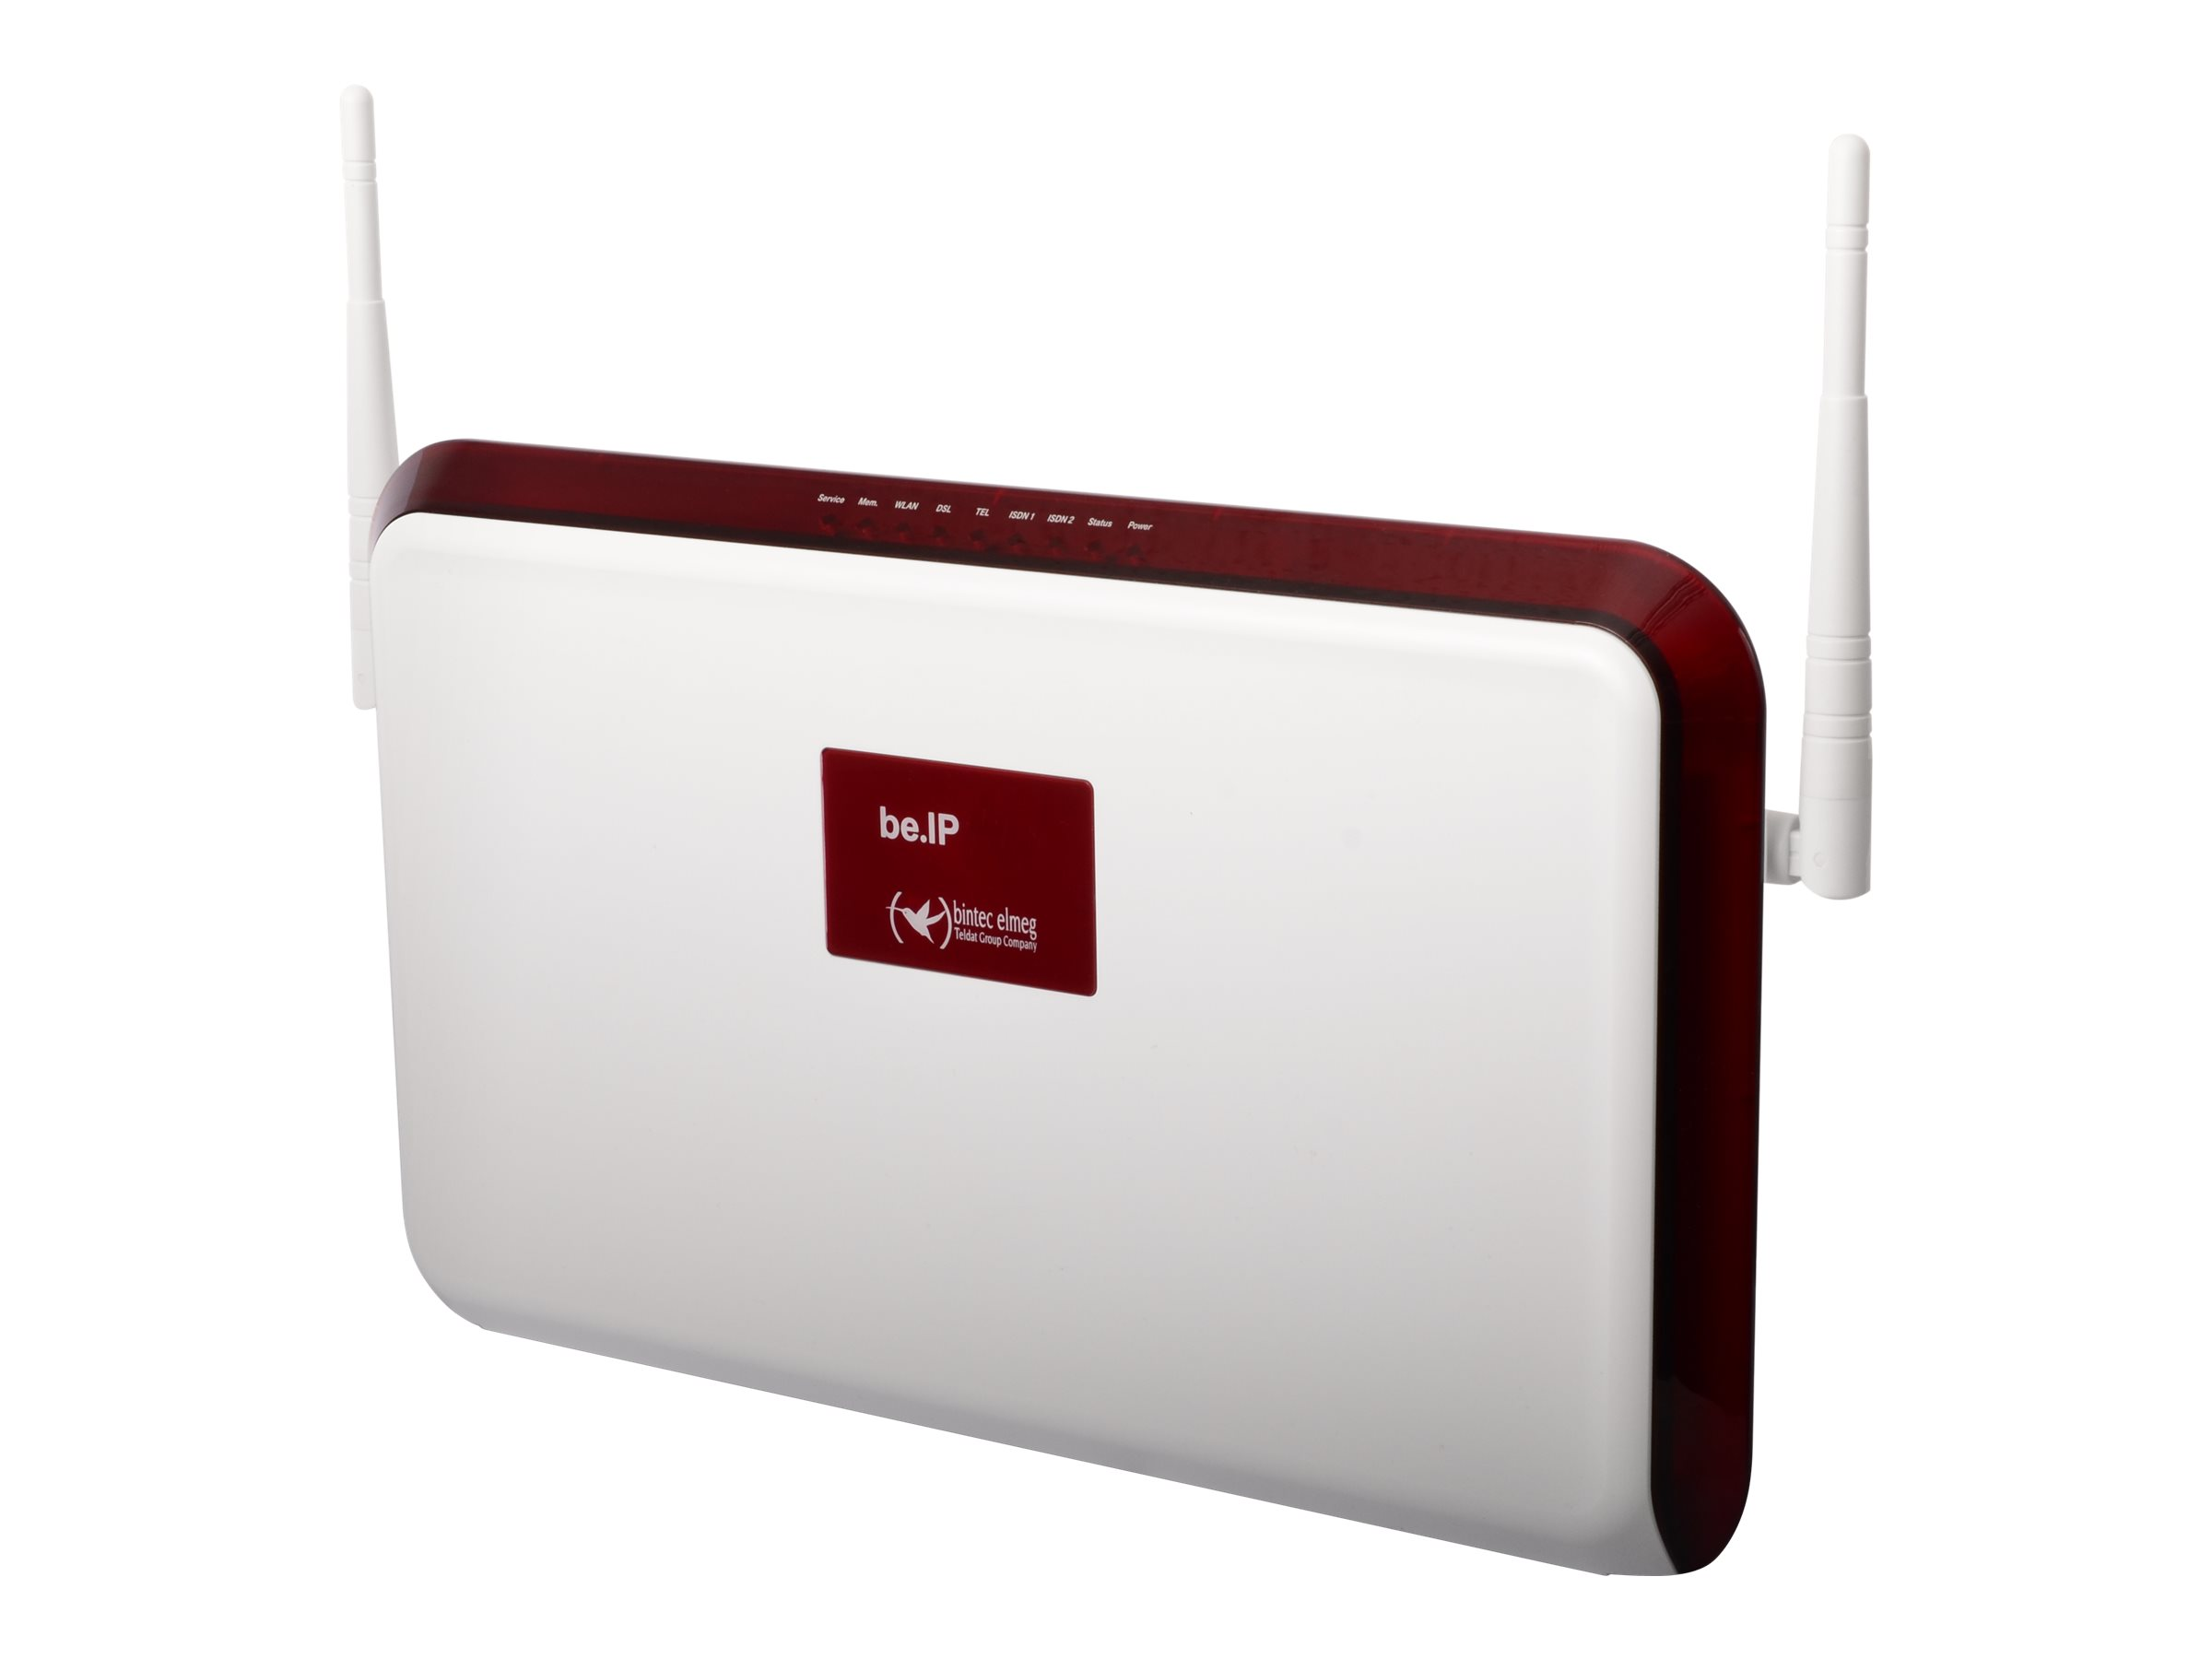 bintec elmeg be.IP - Wireless Router - DSL-Modem - GigE, PPP, MLPPP - WAN-Ports: 4 - 802.11a/b/g/n